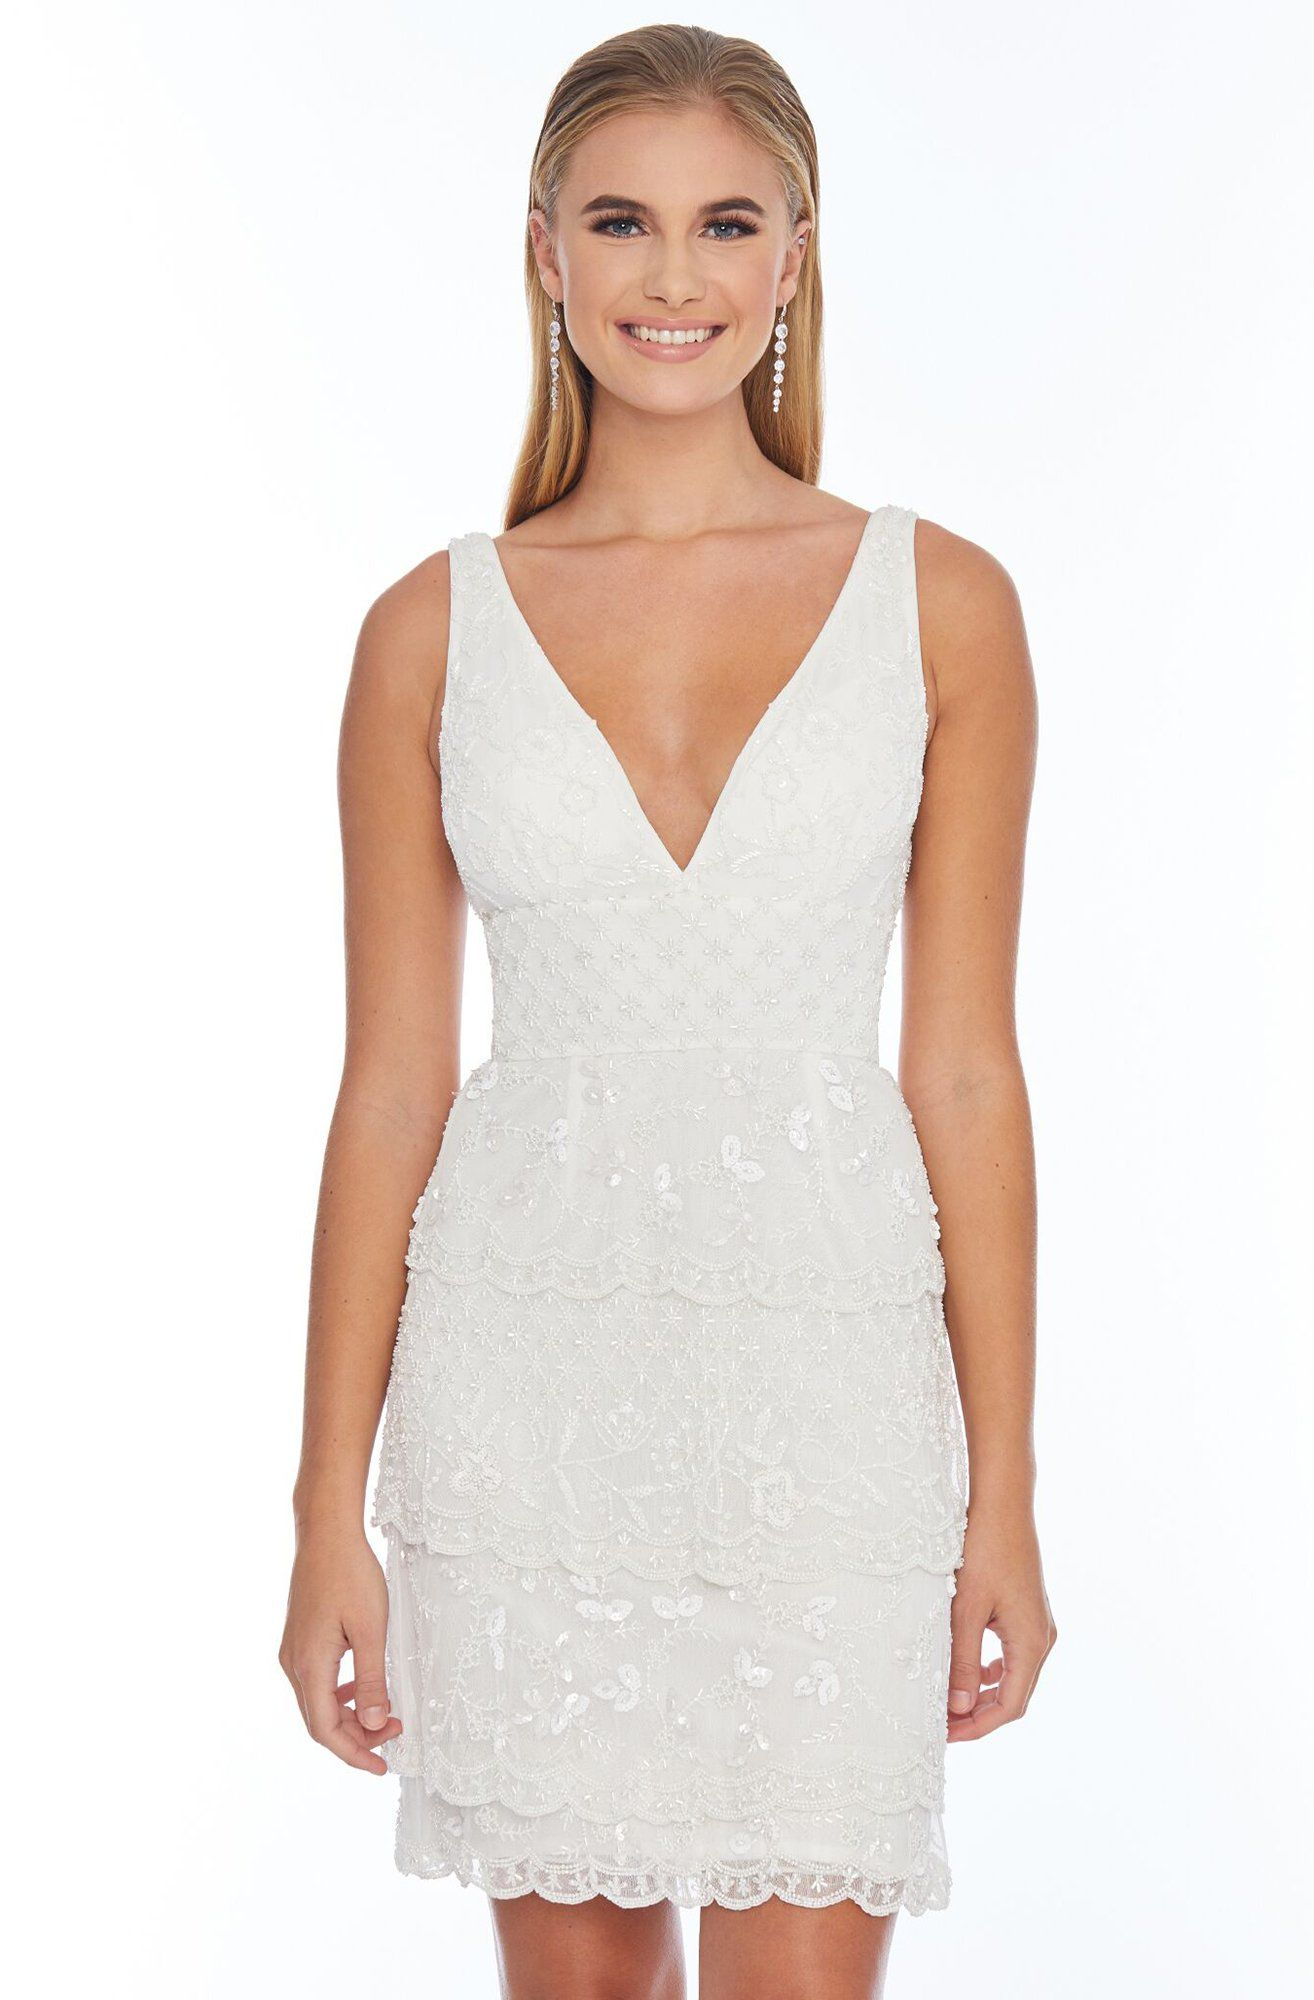 Ashley Lauren 4251 Beaded Deep Vneck Fitted Dress in